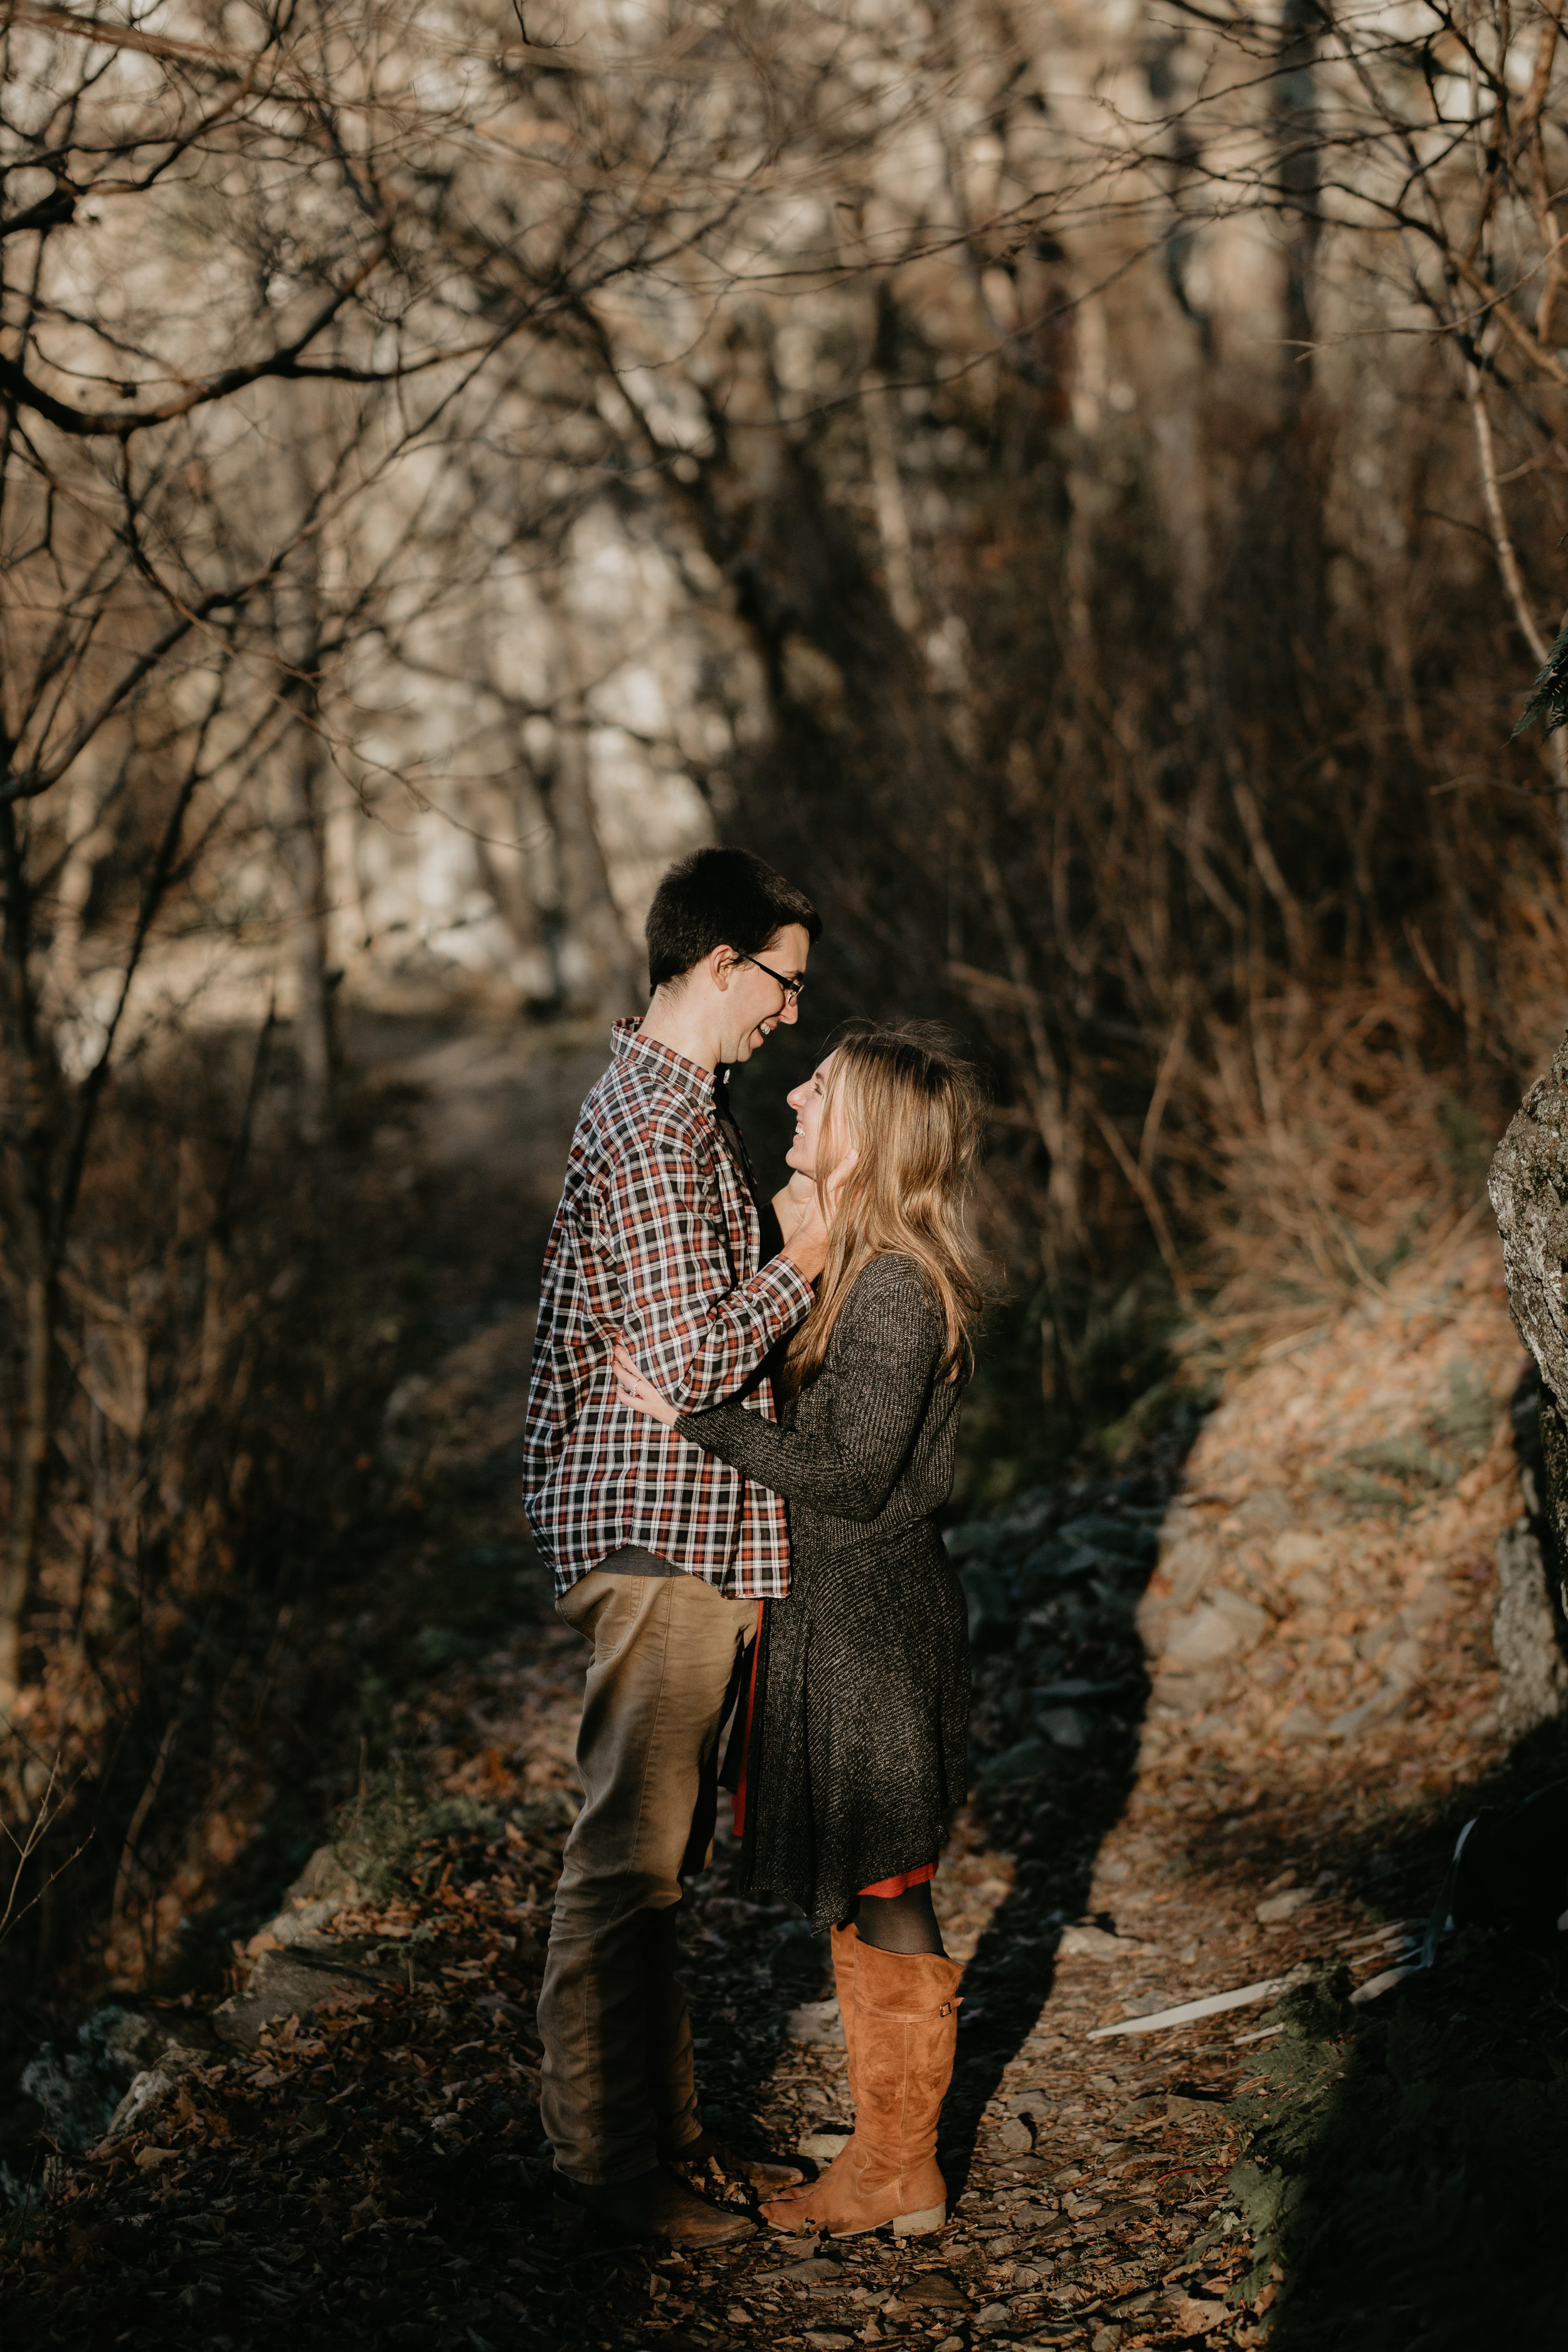 nicole-daacke-photography-shenandoah-national-park-adventure-engagement-session-with-fall-foliage-shenandoah-elopement-photographer-engagement-photos-in-virginia-charlottesville-national-park-adventure-elopement-photographer-3720.jpg